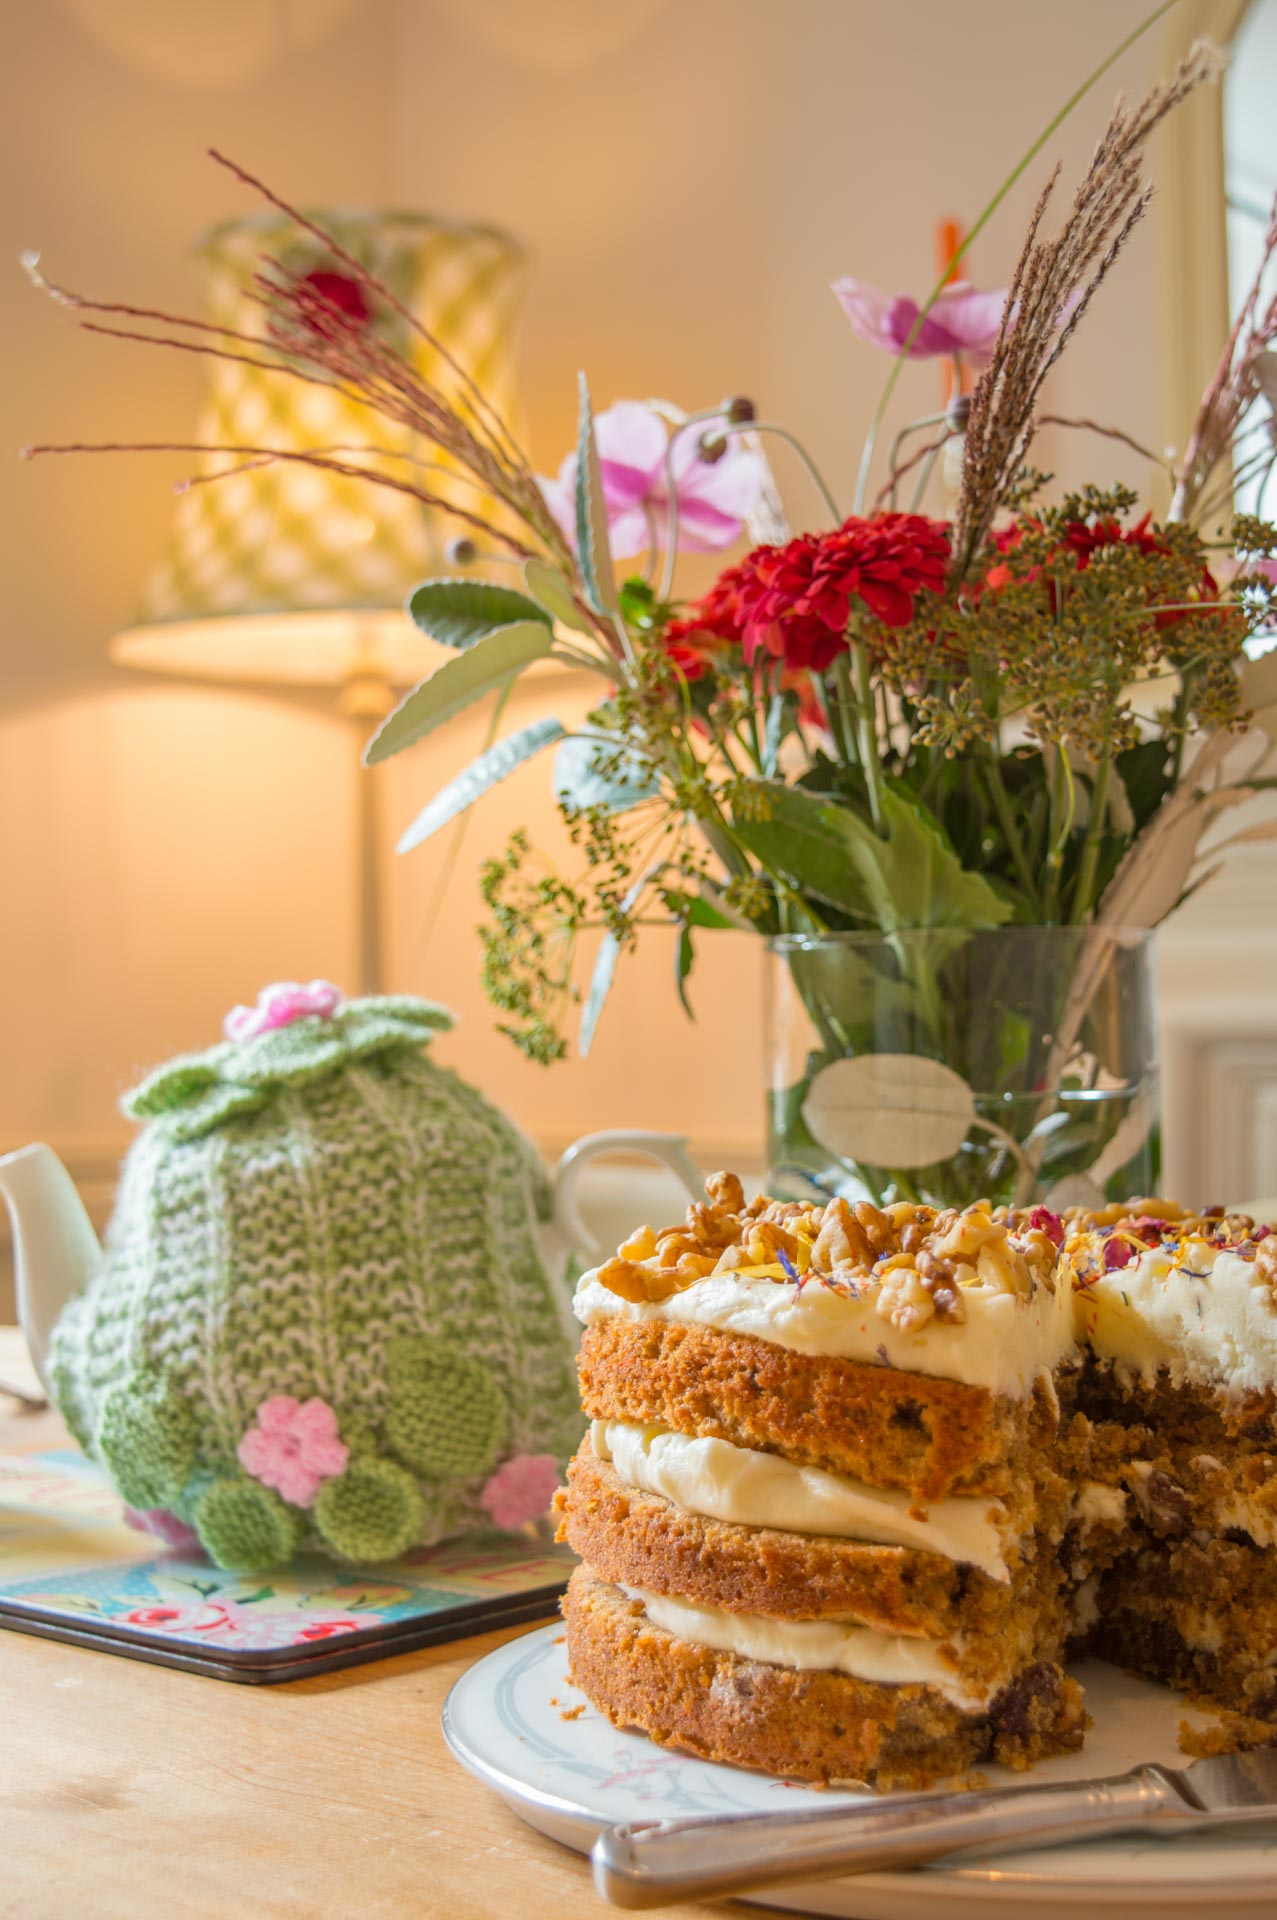 Dining table with cake and tea pot.